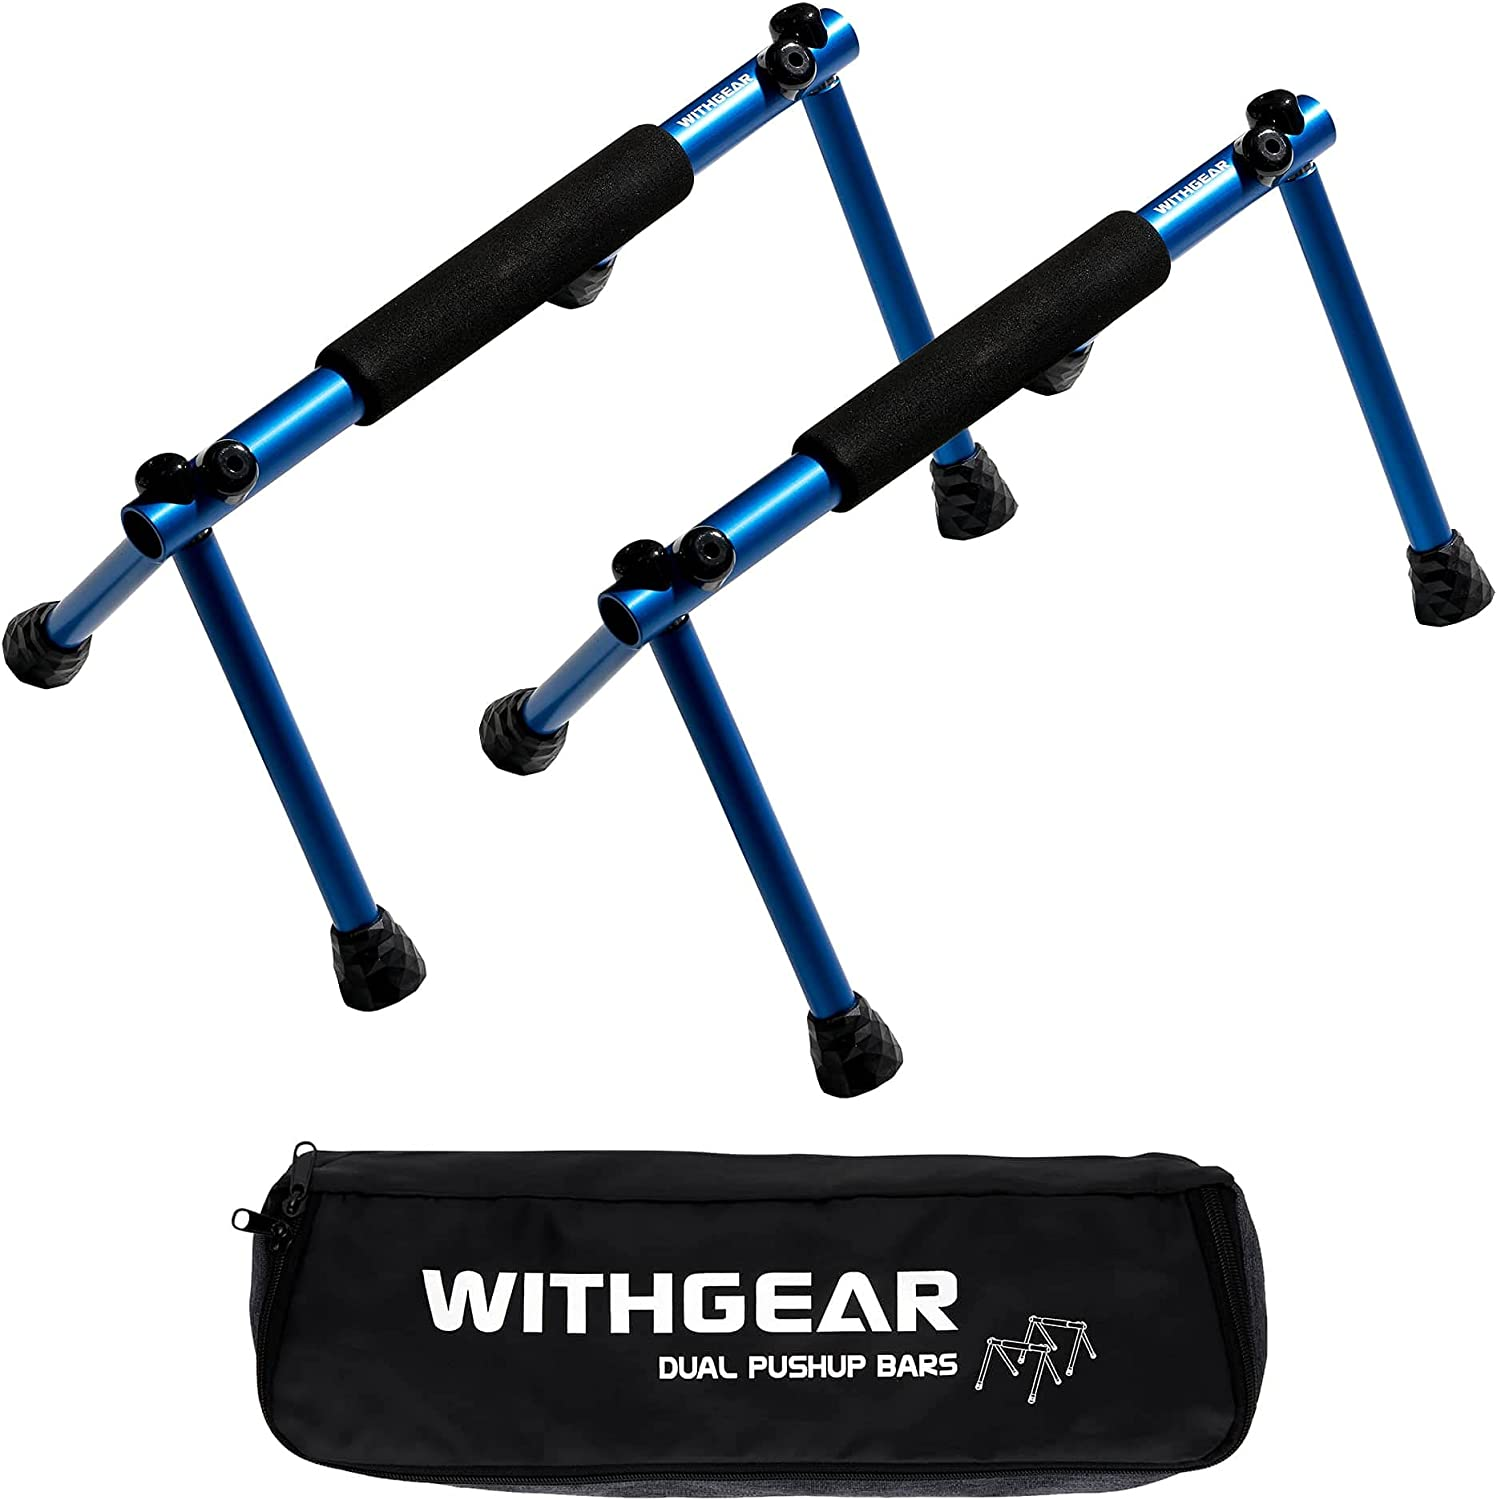 Withgear Folding Push Up Bar - Sturdy Portable Lightweight D Ultra-Cheap Deals In stock and